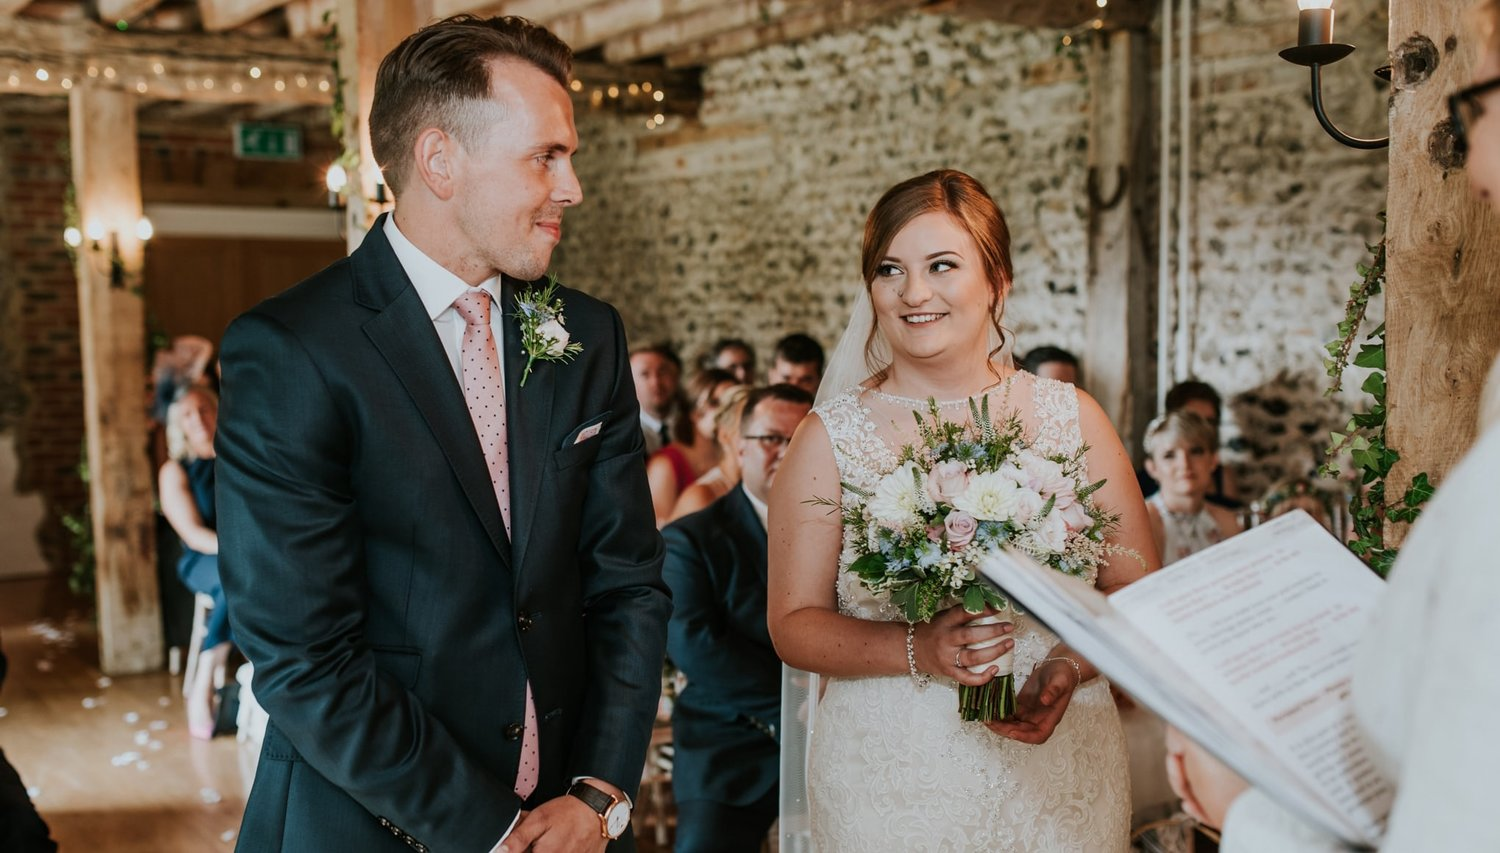 2019 and 2020 wedding dates still available — The Granary